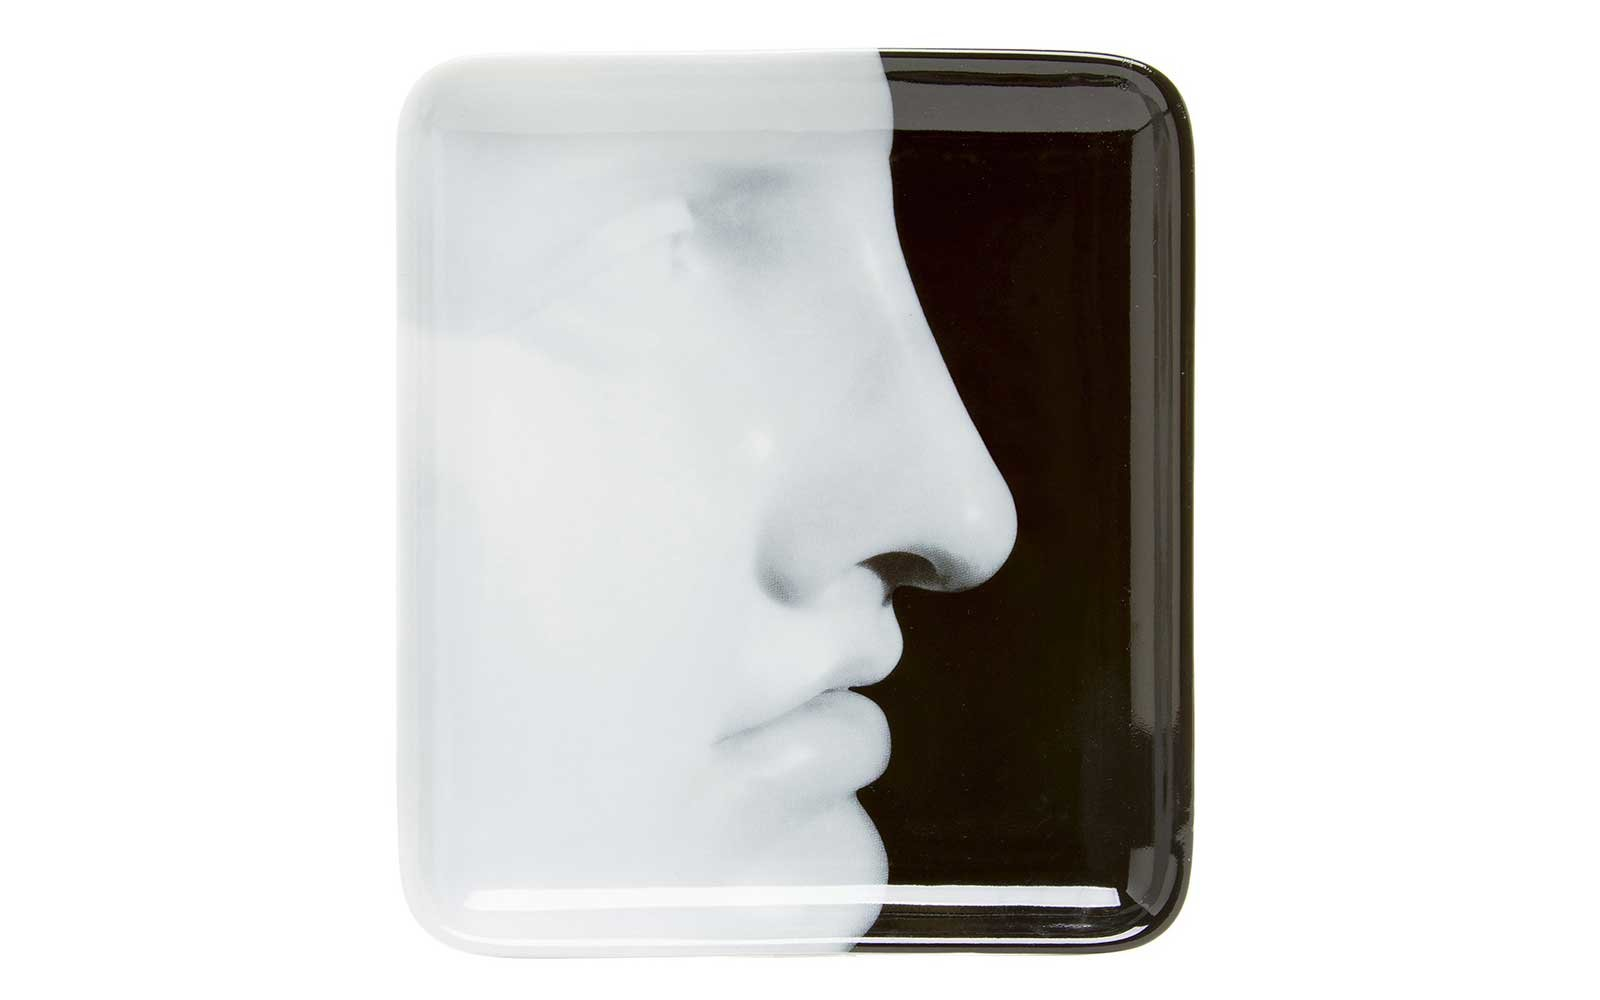 Apollo by Robert Mapplethorpe Limoges Porcelain Tray